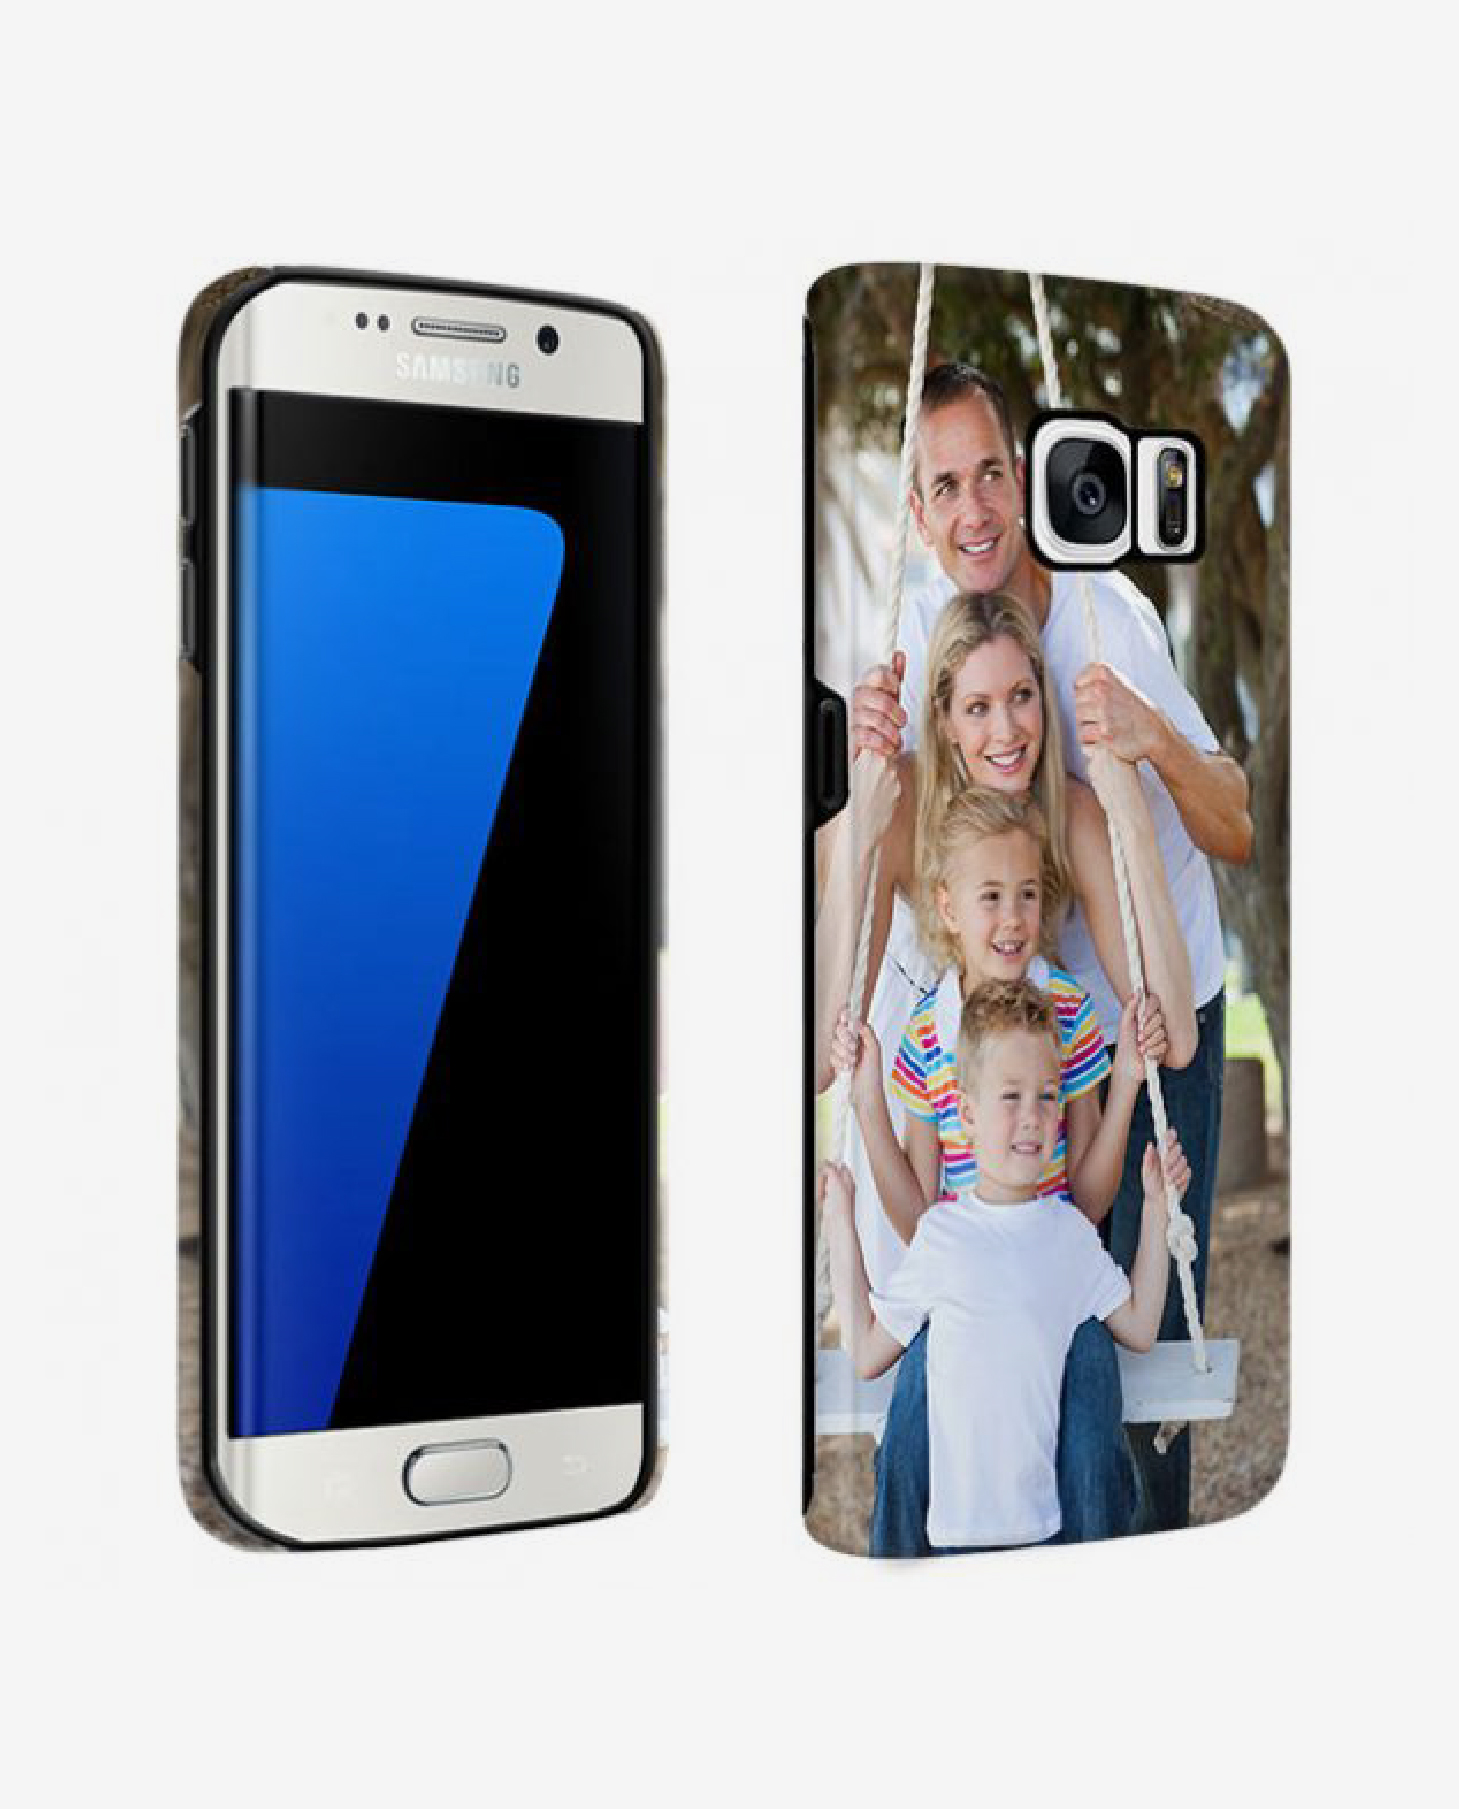 Personalised Phone Cases - HDTV Entertainment